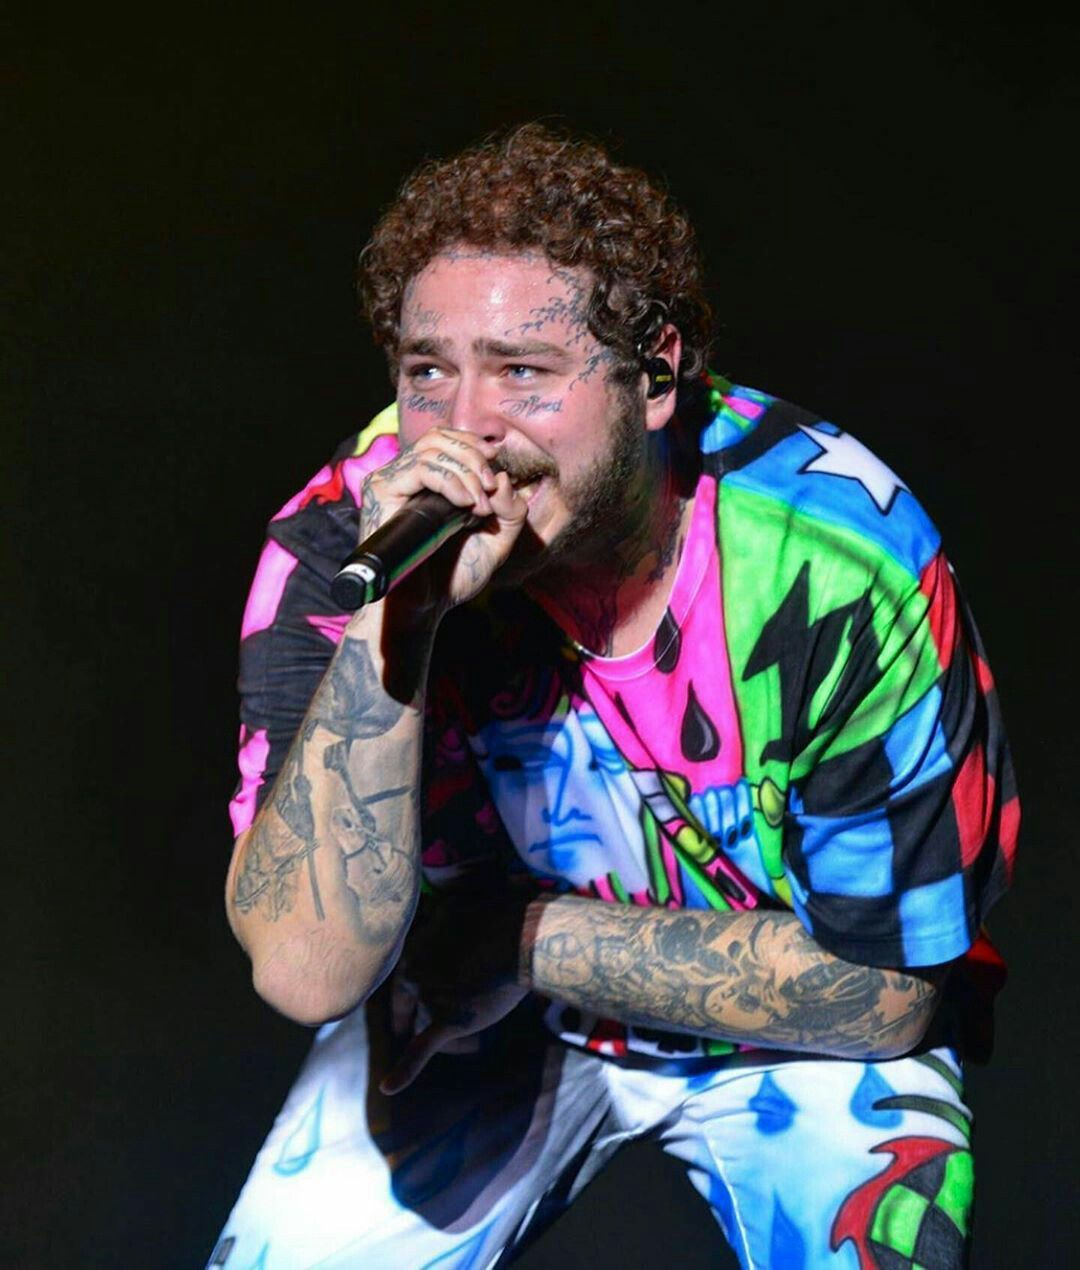 Post Malone I Fall Apart Guitar: Post Malone, Daddy, I Fall Apart